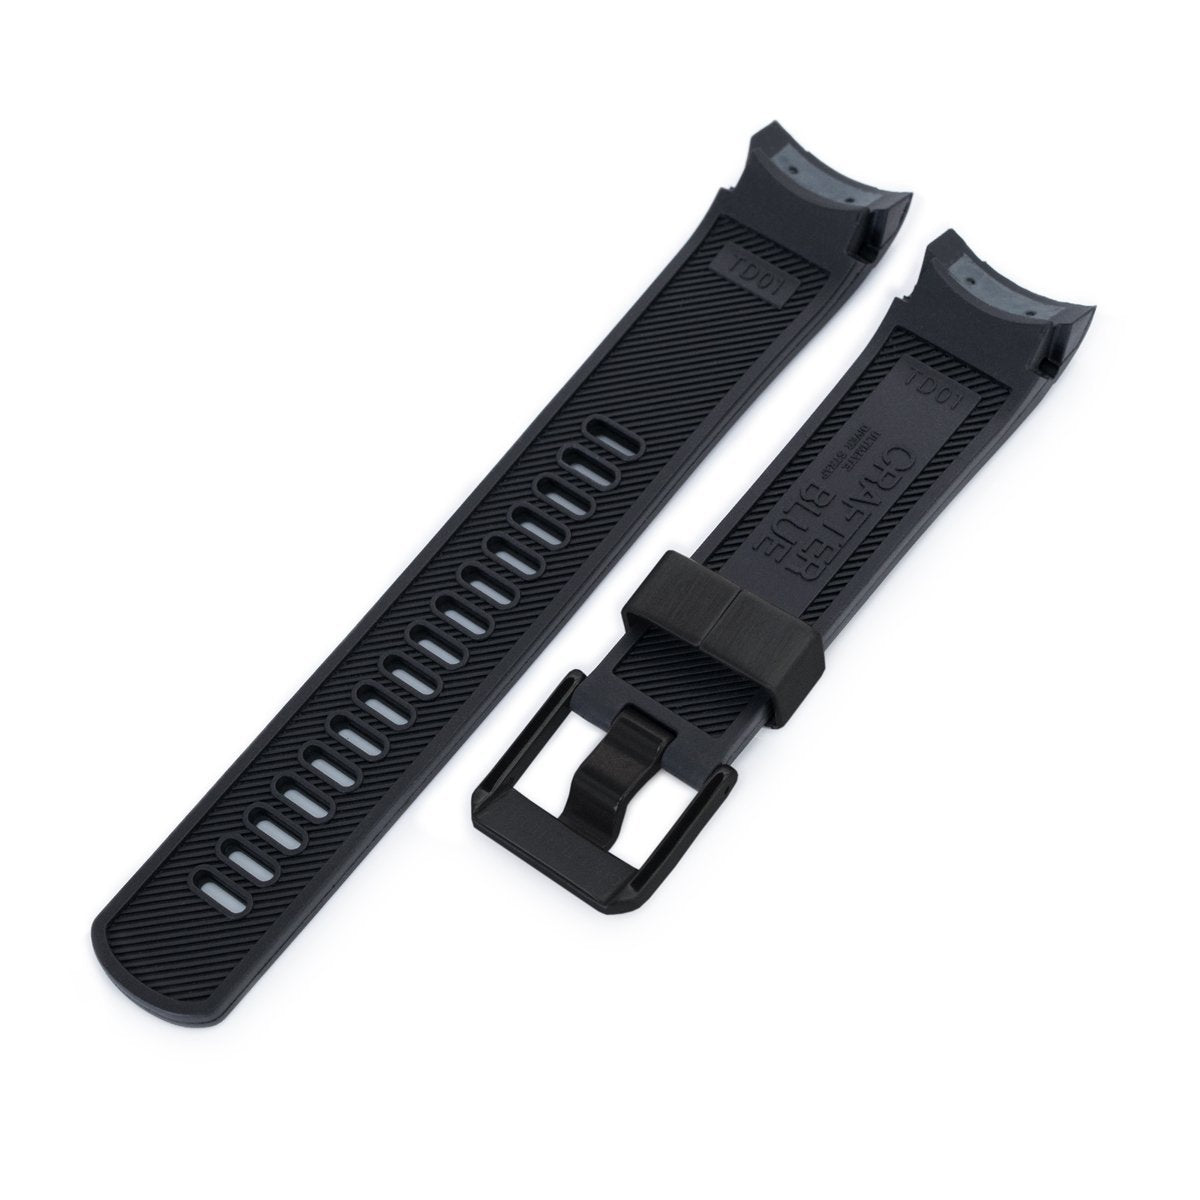 22mm Crafter Blue Black Rubber Curved Lug Watch Strap for TUD BB M79230 PVD Black Buckle Strapcode Watch Bands